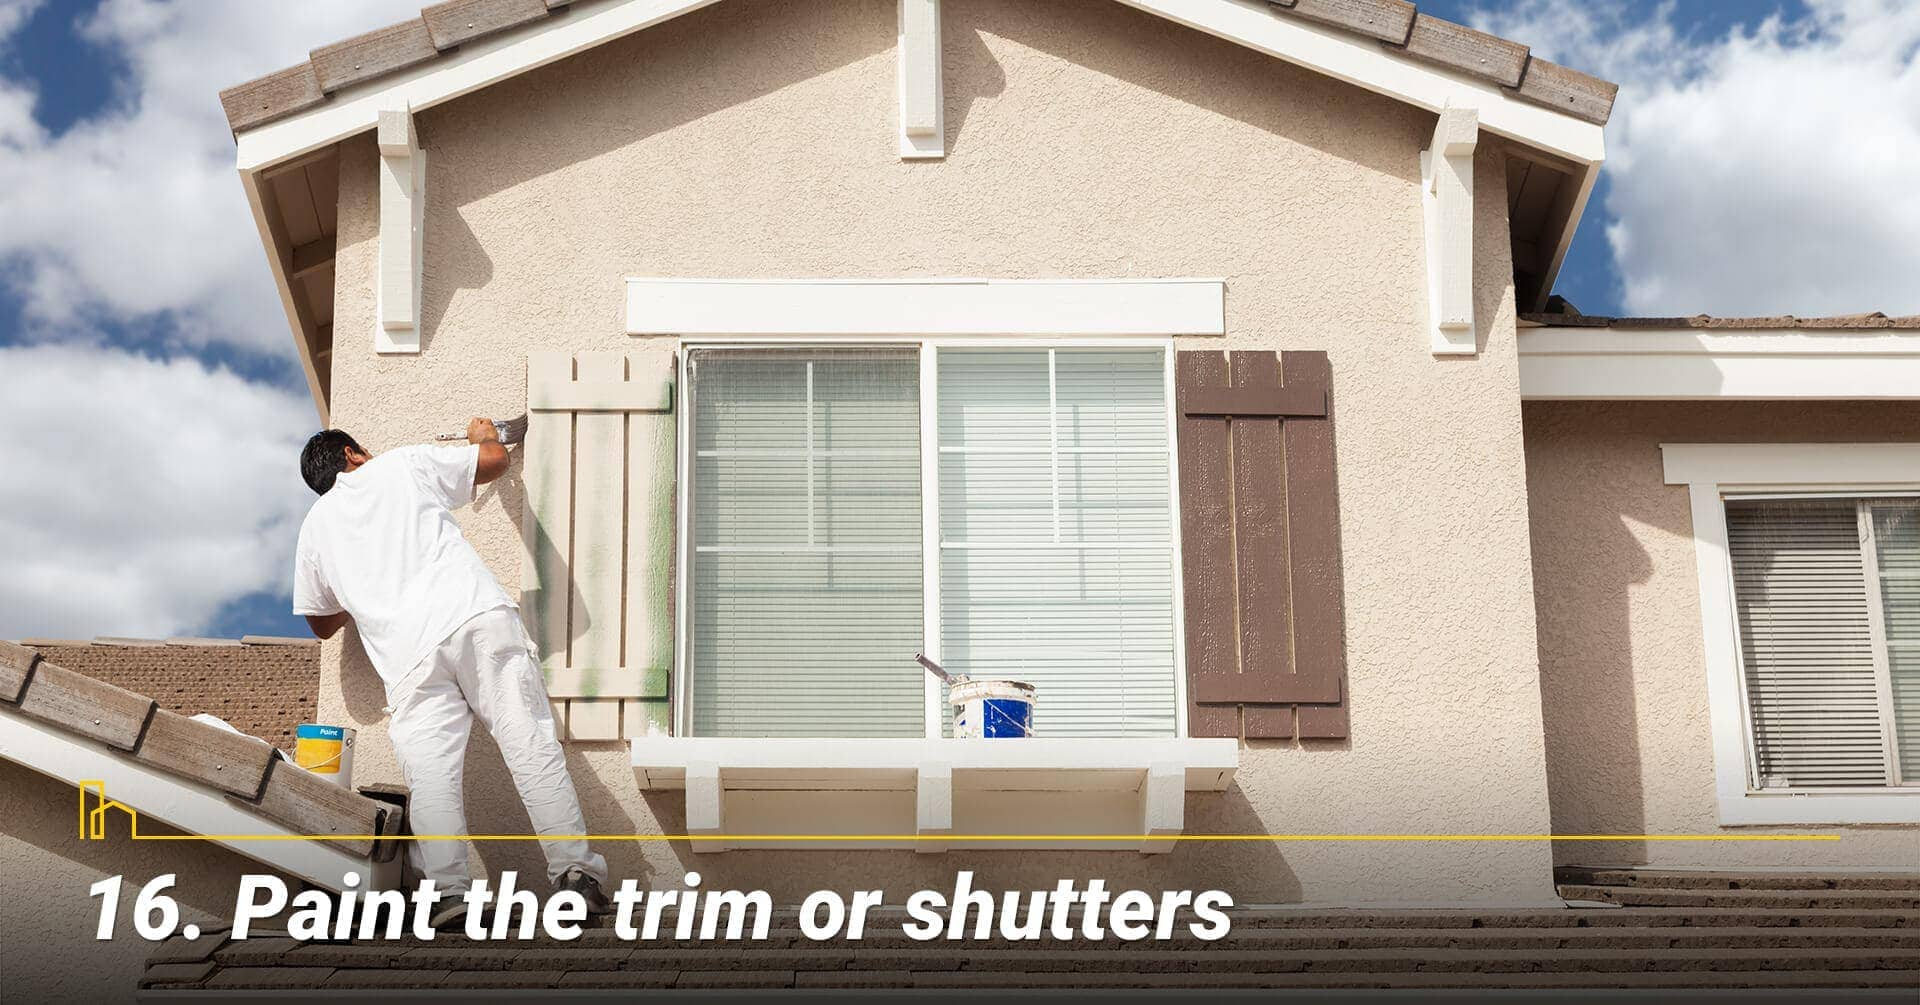 Paint the trim or shutters, maintenance the exterior of the house